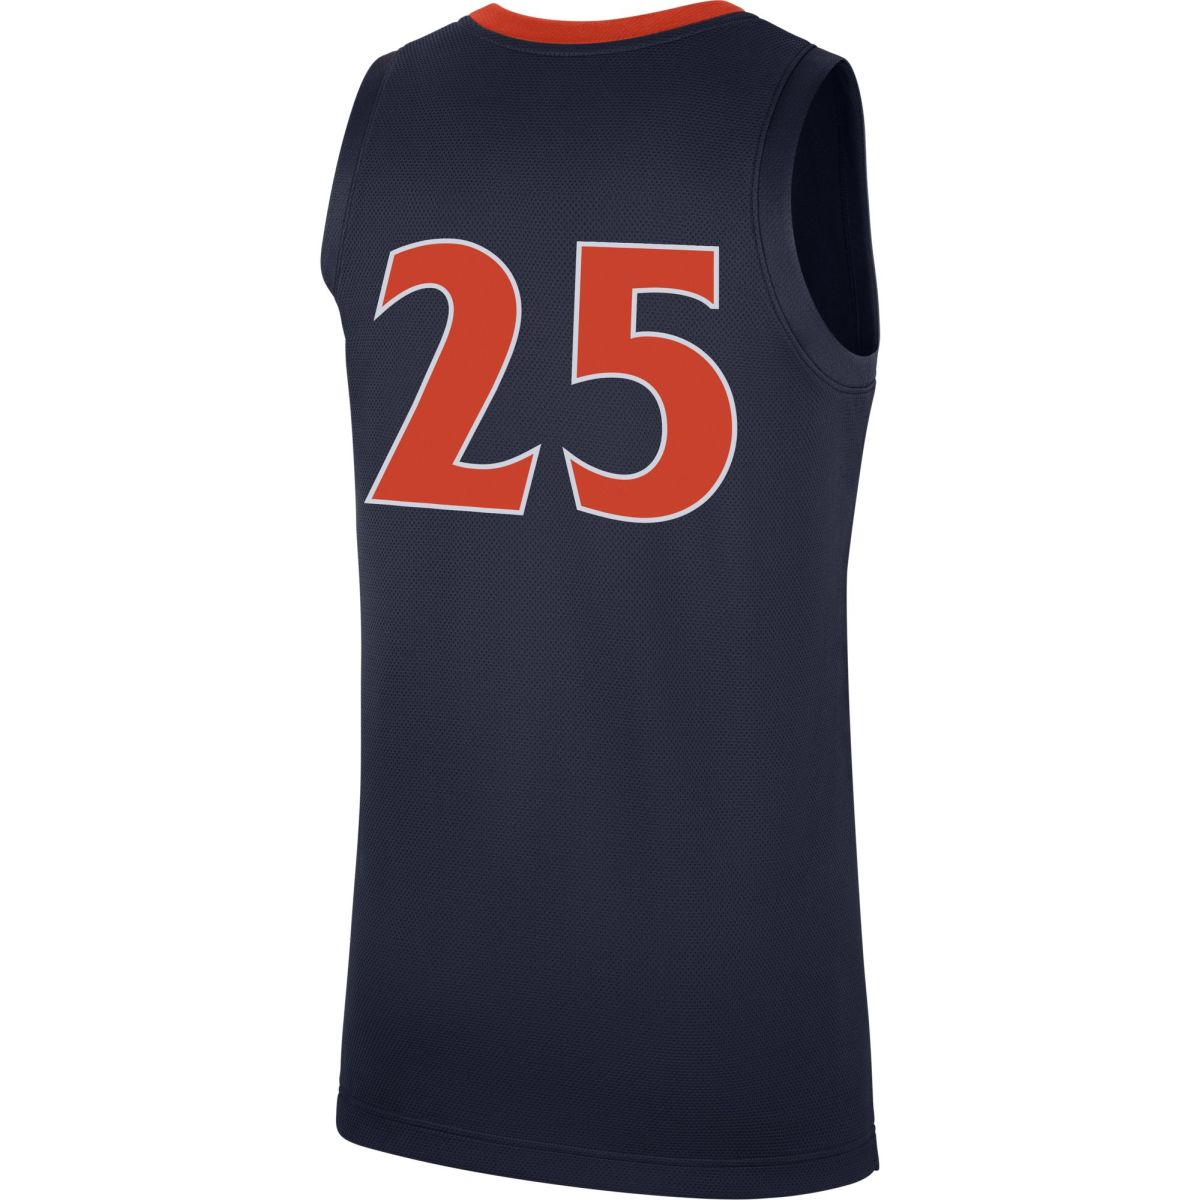 University of Virginia Men's Basketball Replica Jersey